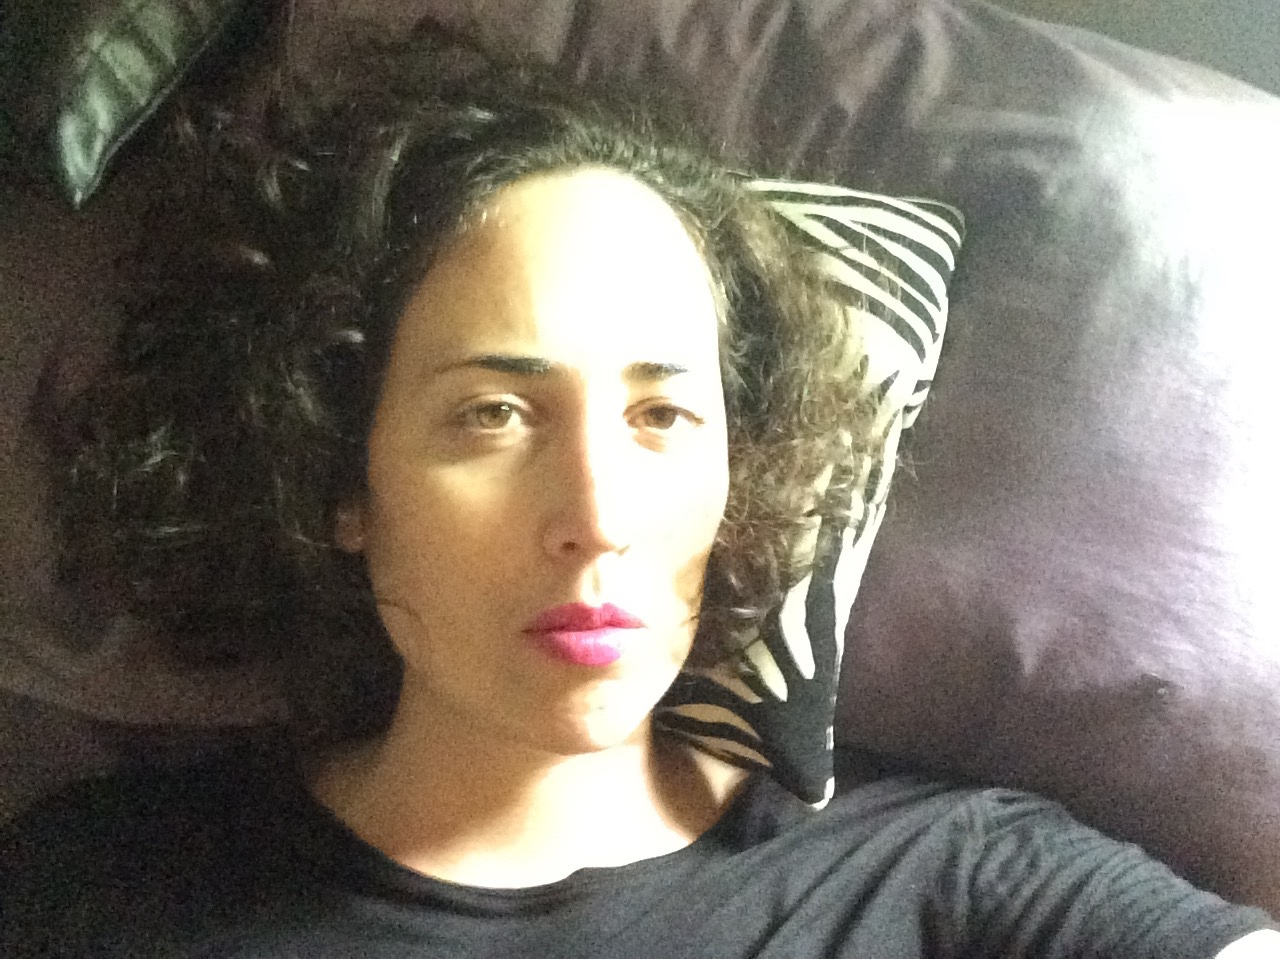 A grainy high contrast photo shows the author from the shoulders up. Her head rests on a small black and white zebra print pillow on a dark background. Her chin length curly brown hair rests around her face, which is brightly lit from one side, creating an impression of glowing. She has white skin and her brown eyes look directly at the viewer. Her bright pink lips are closed and unsmiling. The picture is serious in tone and communicates pride and strength.